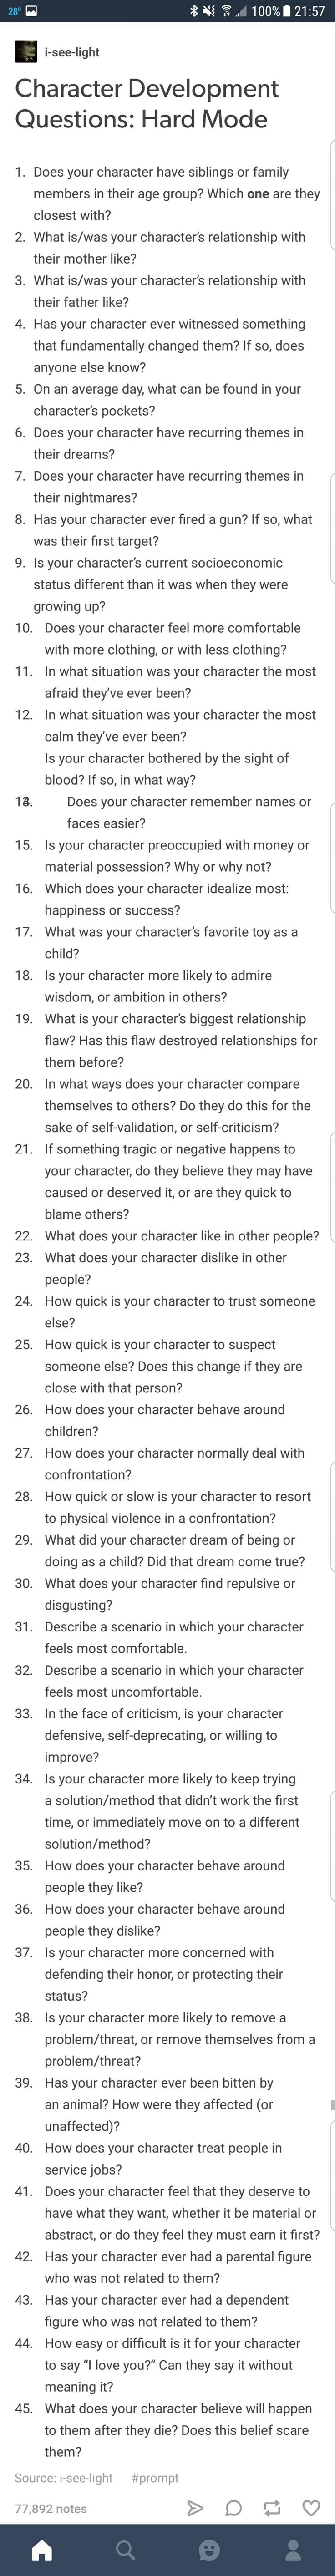 How to write a character